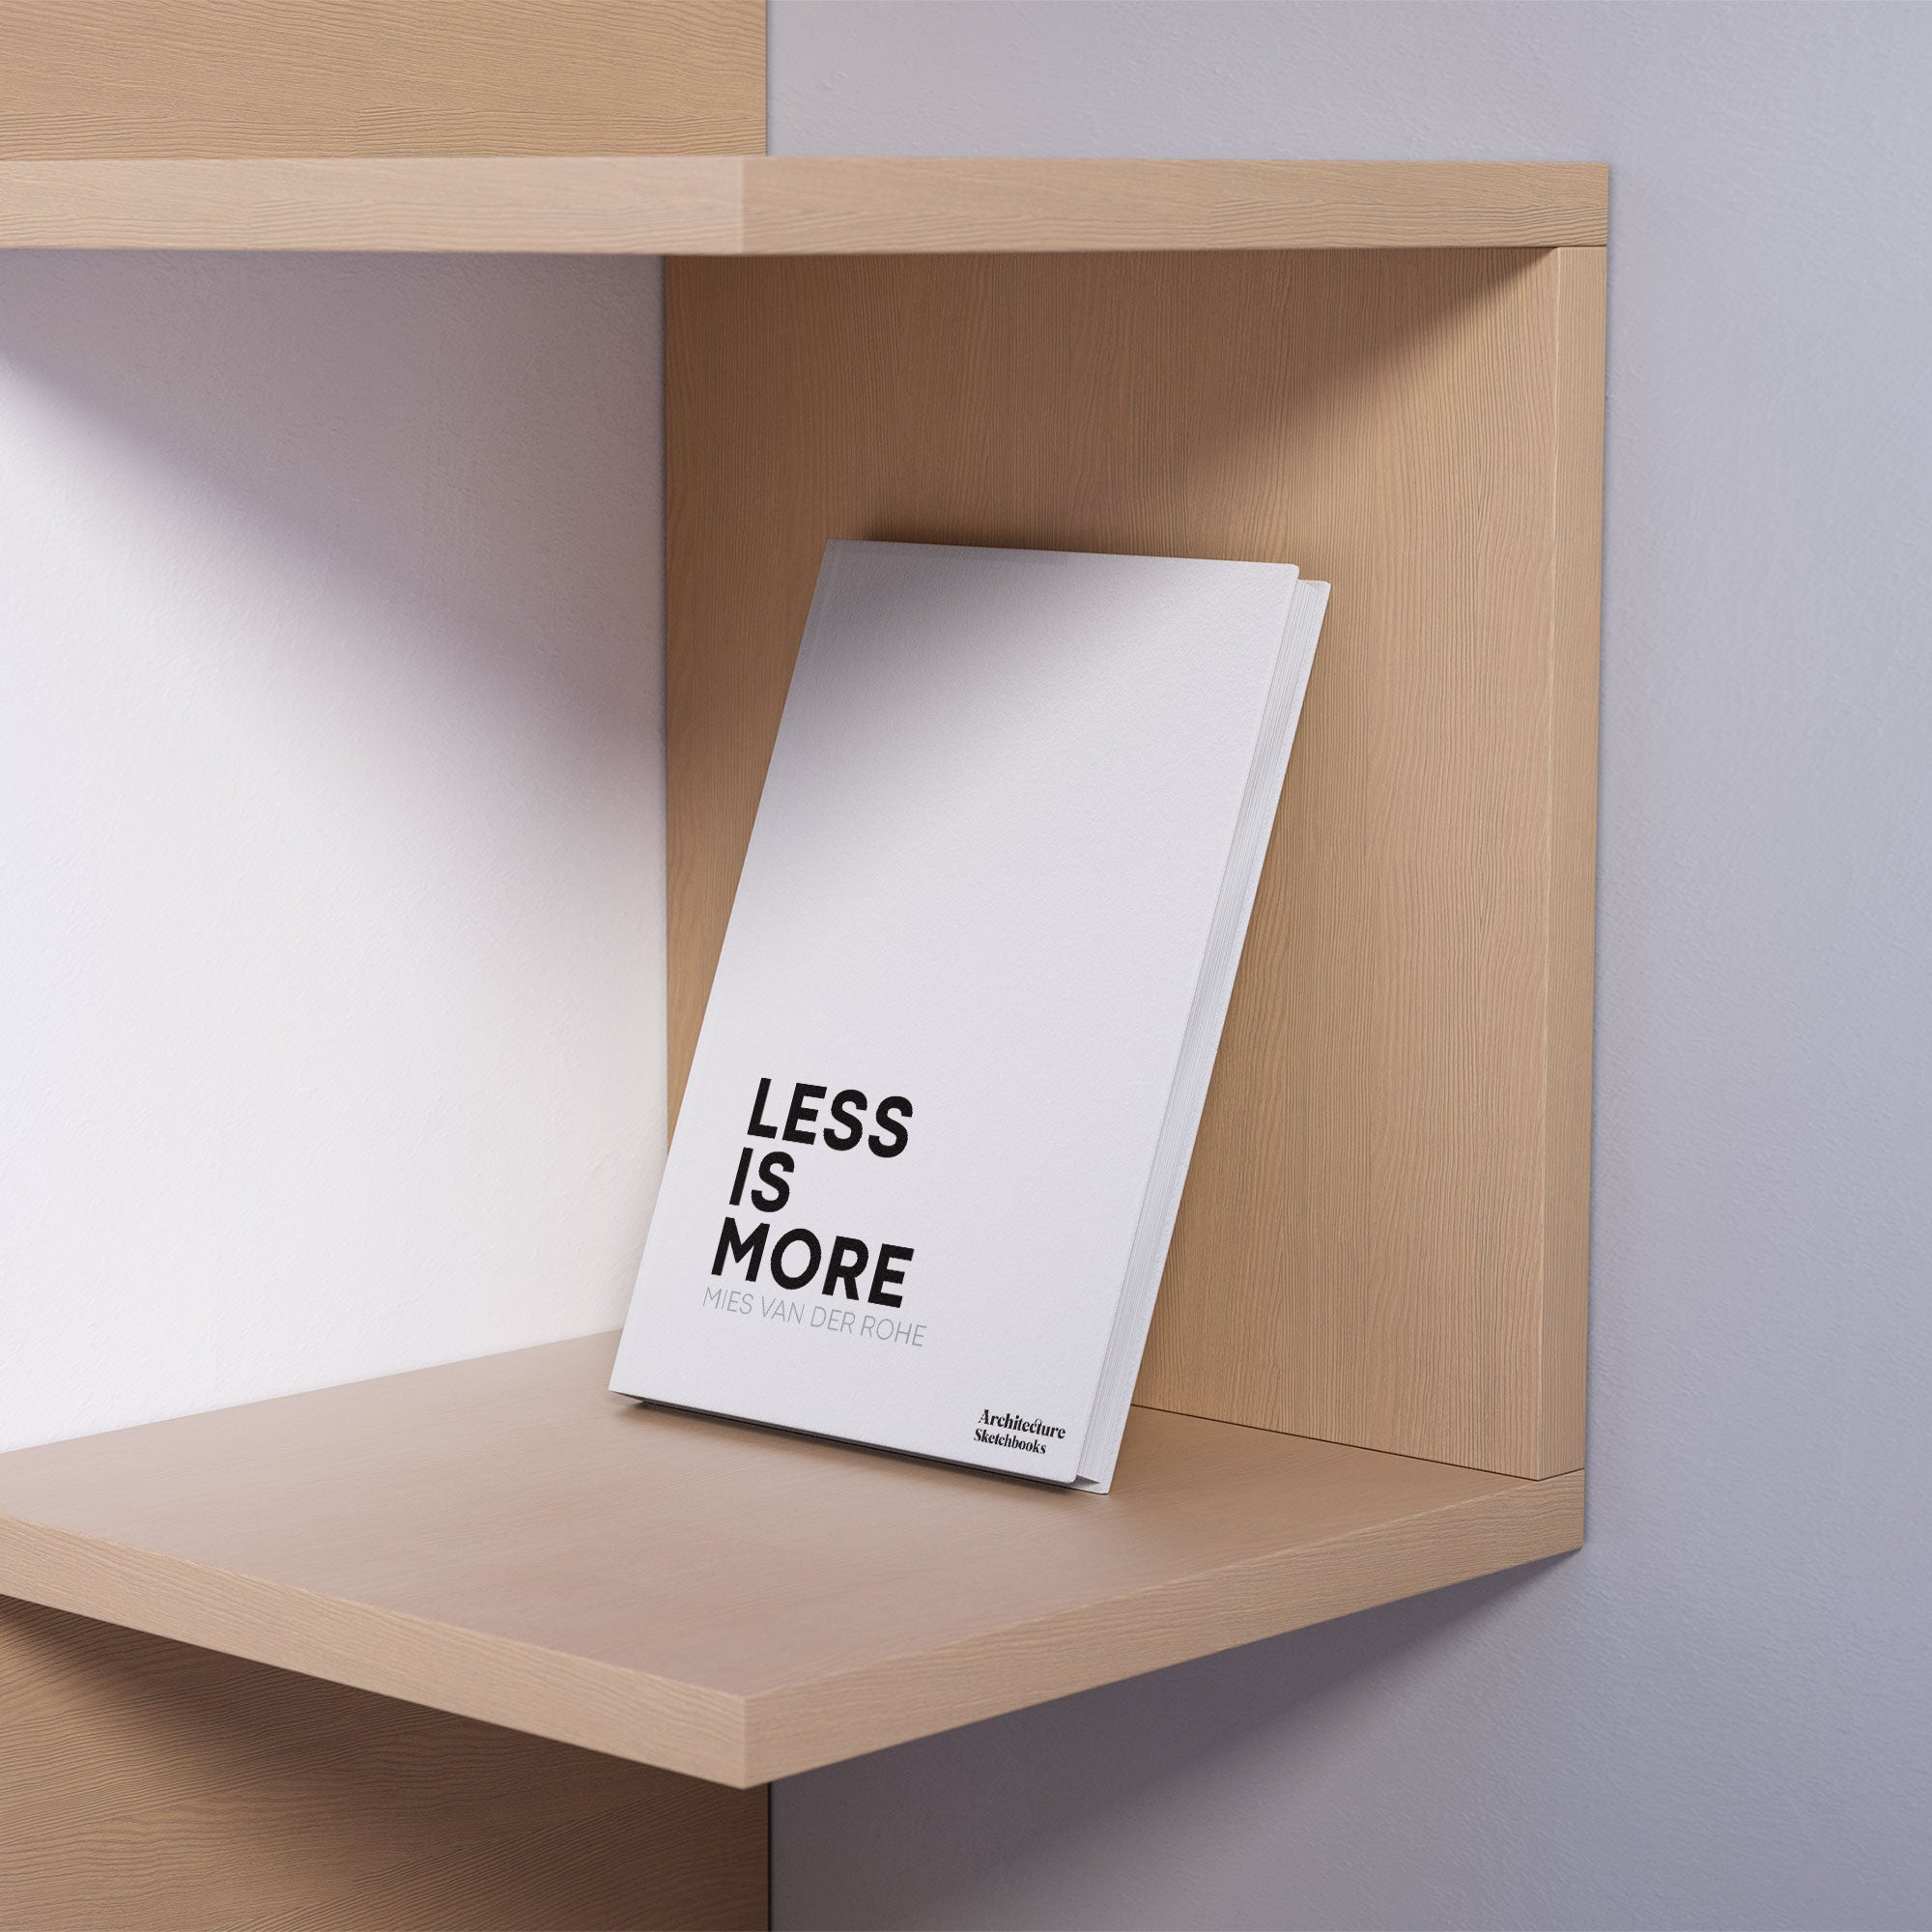 Less is More notebook: Inspired by Mies van der Rohe